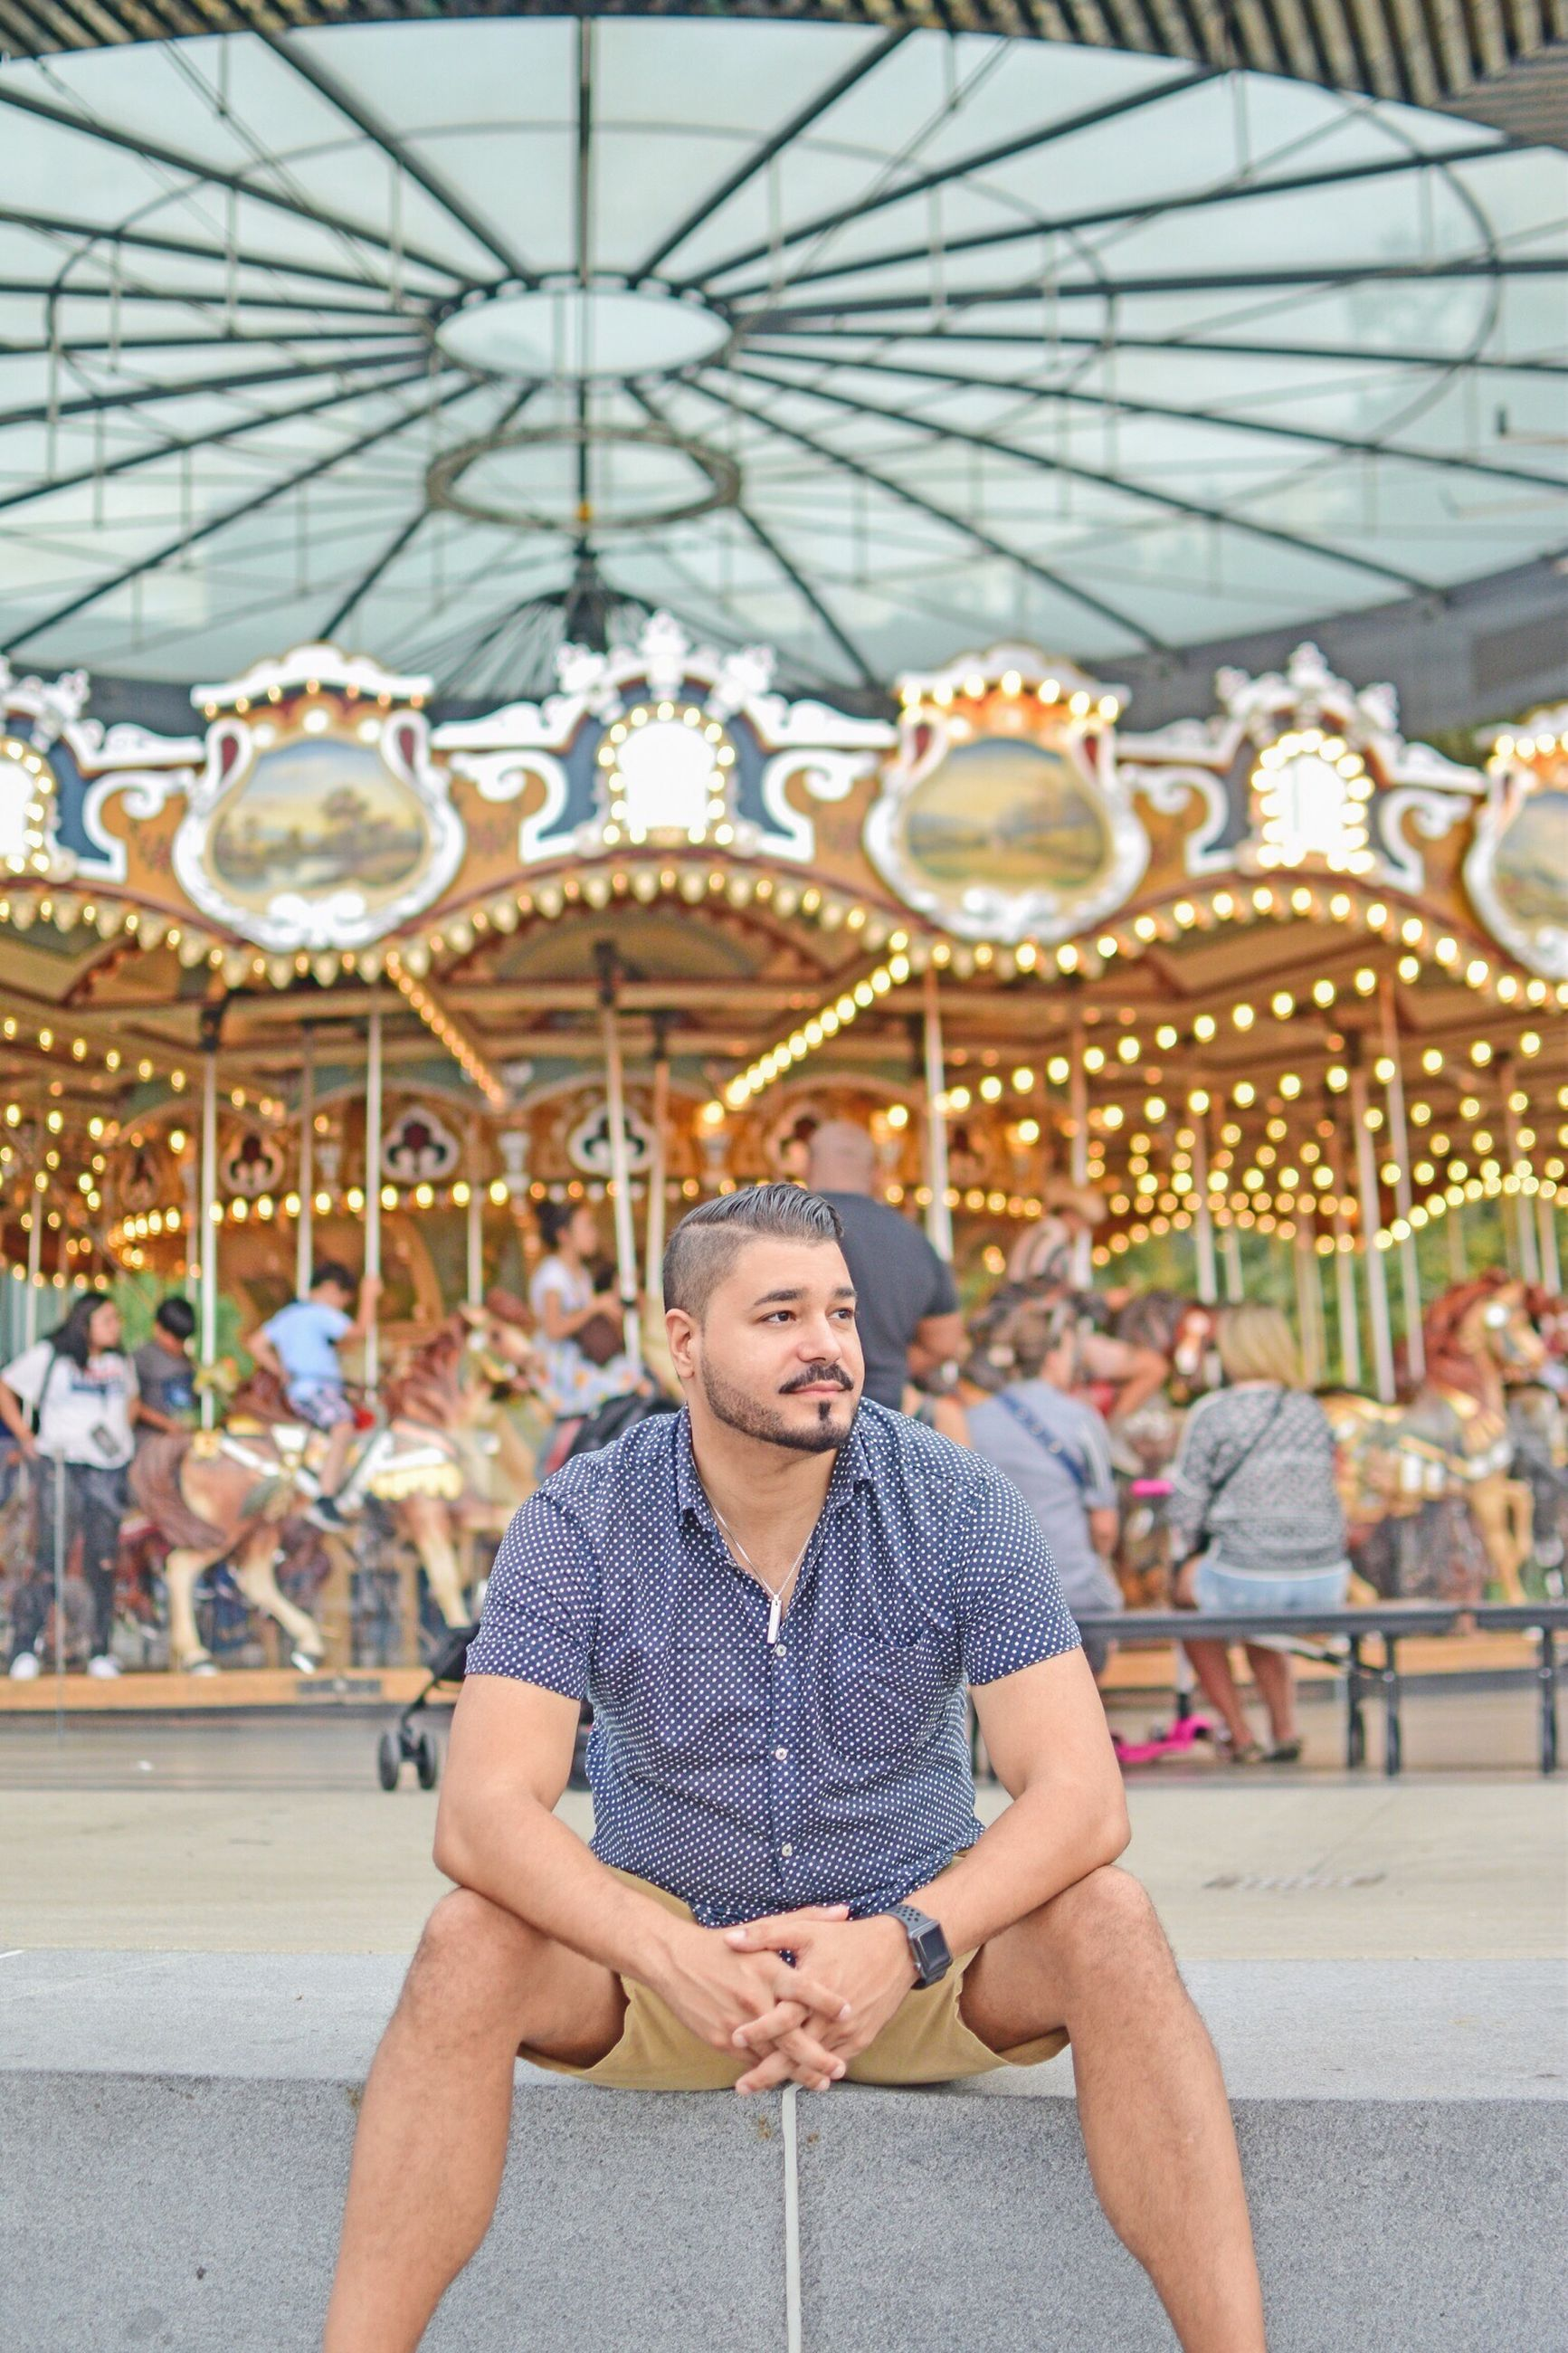 leisure activity, amusement park, amusement park ride, one person, arts culture and entertainment, focus on foreground, incidental people, front view, real people, lifestyles, portrait, young adult, enjoyment, adult, sitting, day, casual clothing, young men, carousel